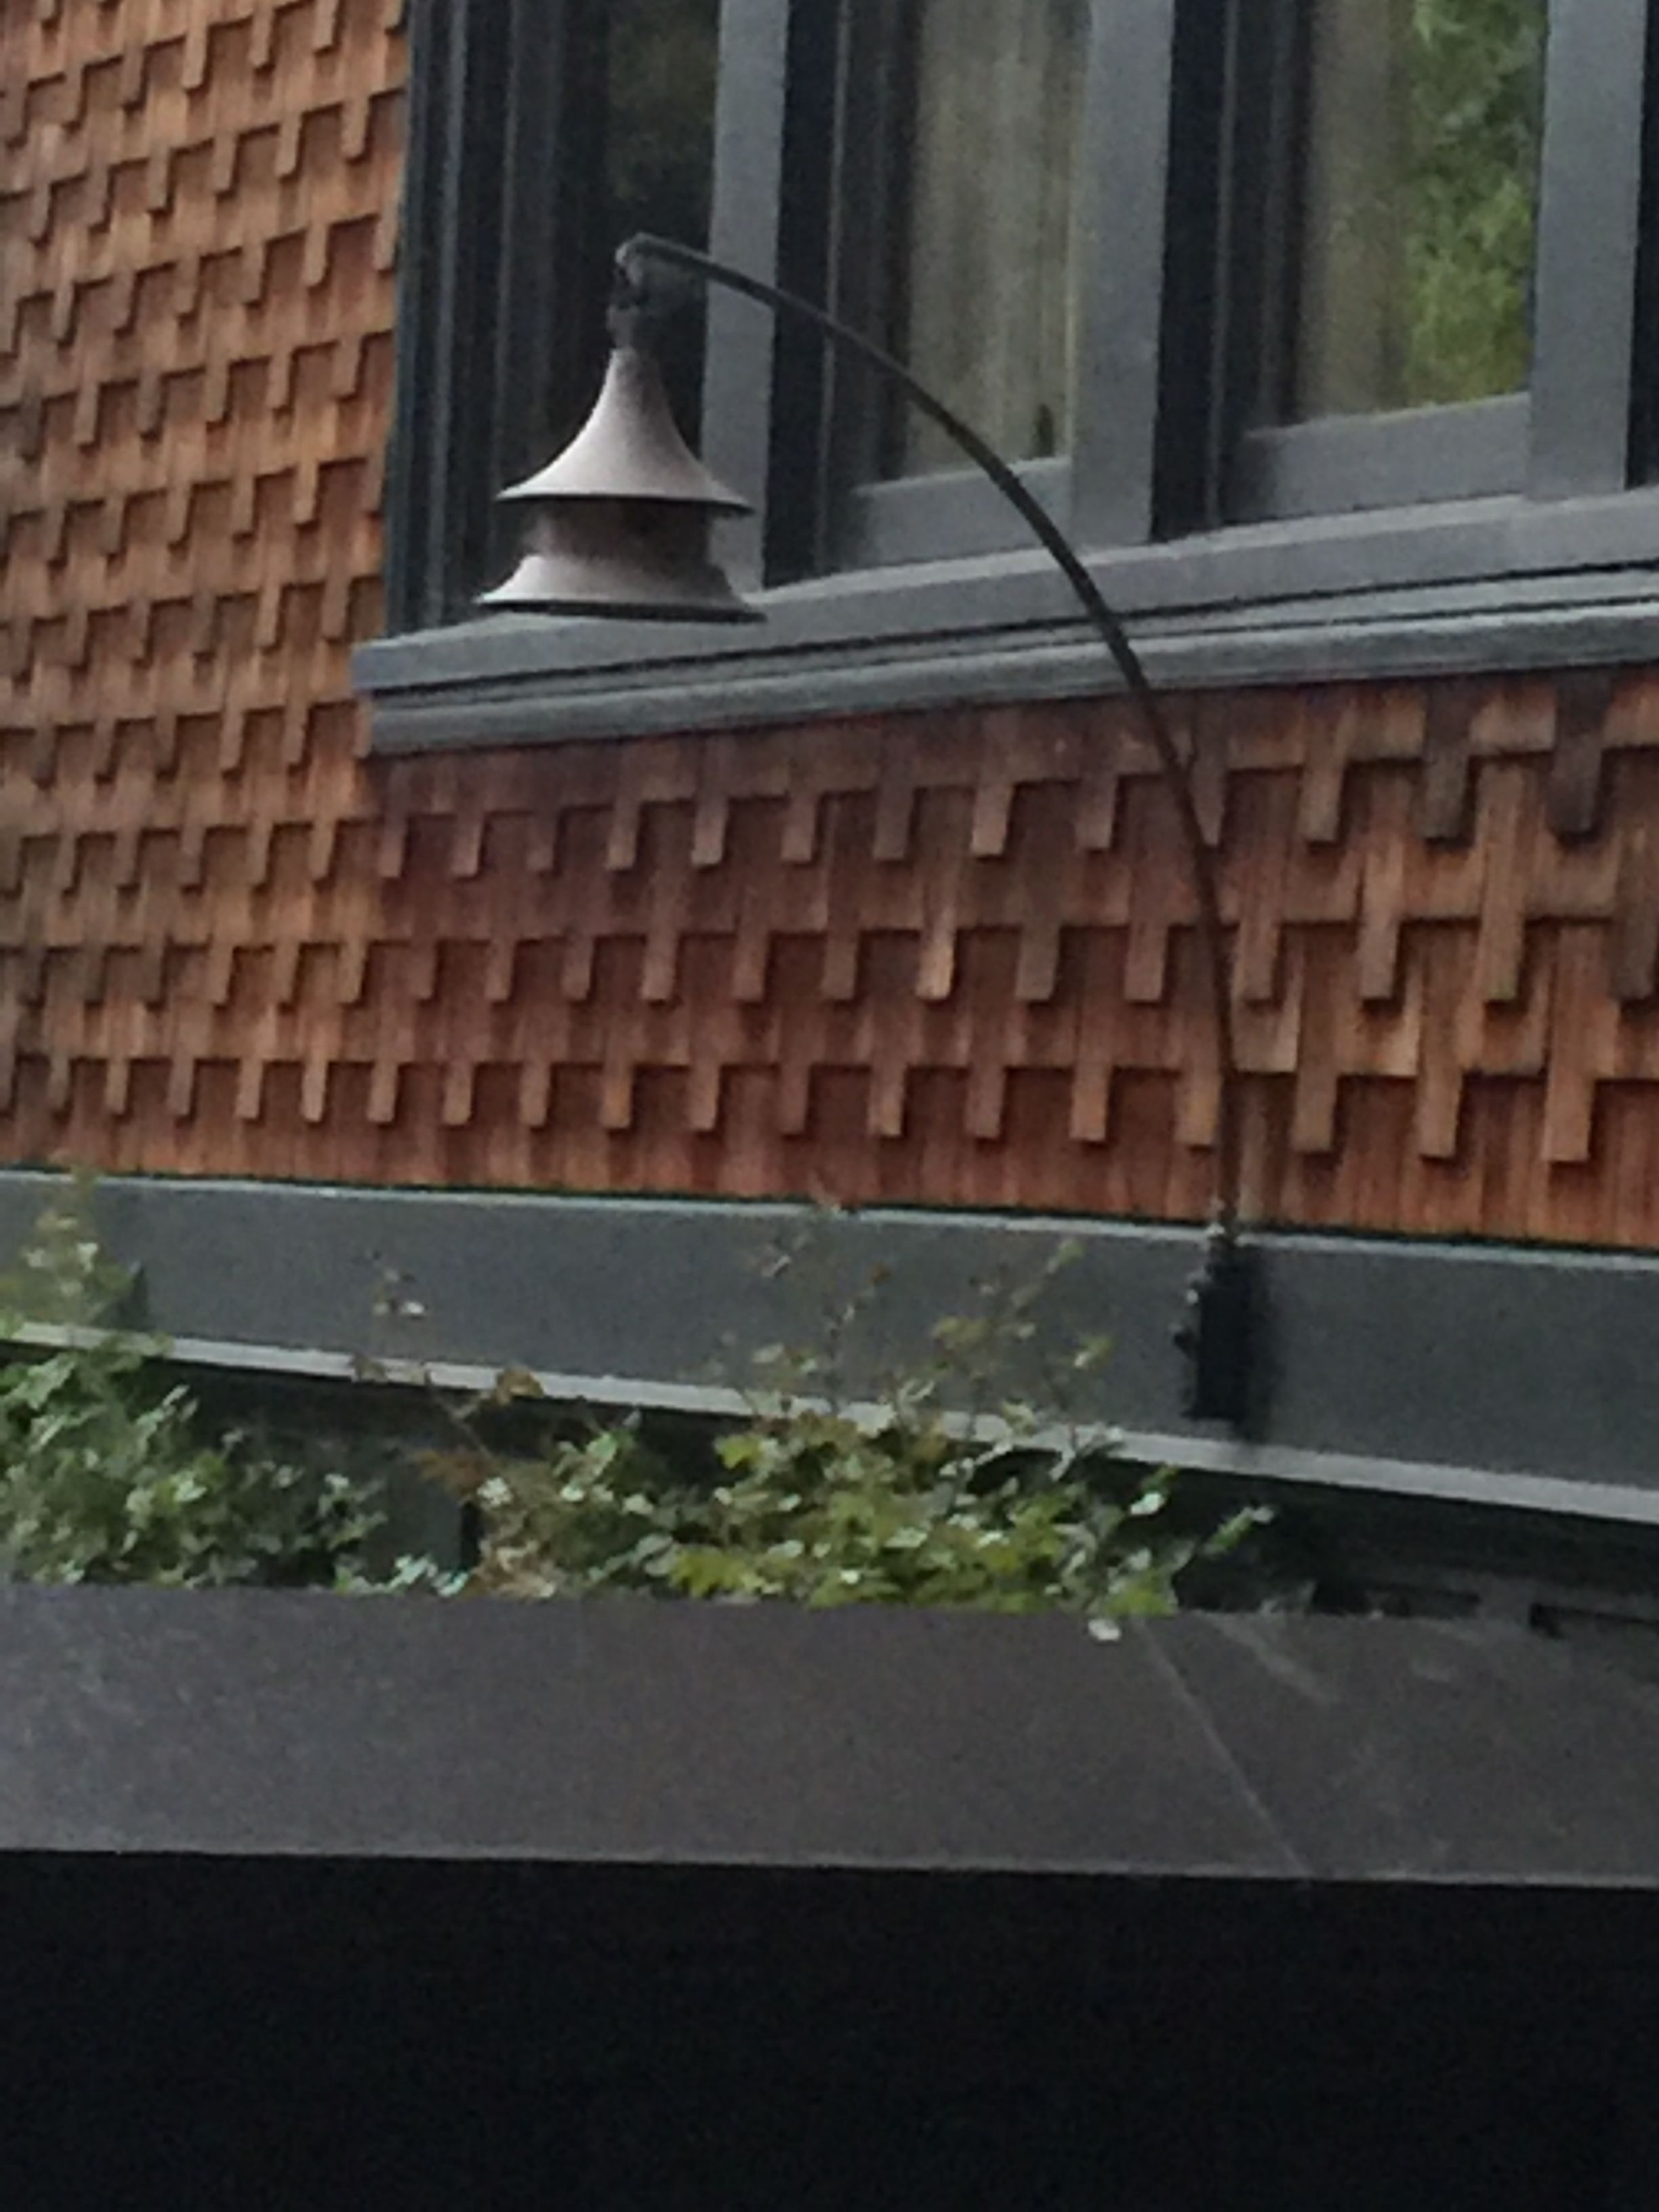 Pin By Flaneuring On Shingles Roofs Siding In 2020 Roof Siding Roof Shingles Decor